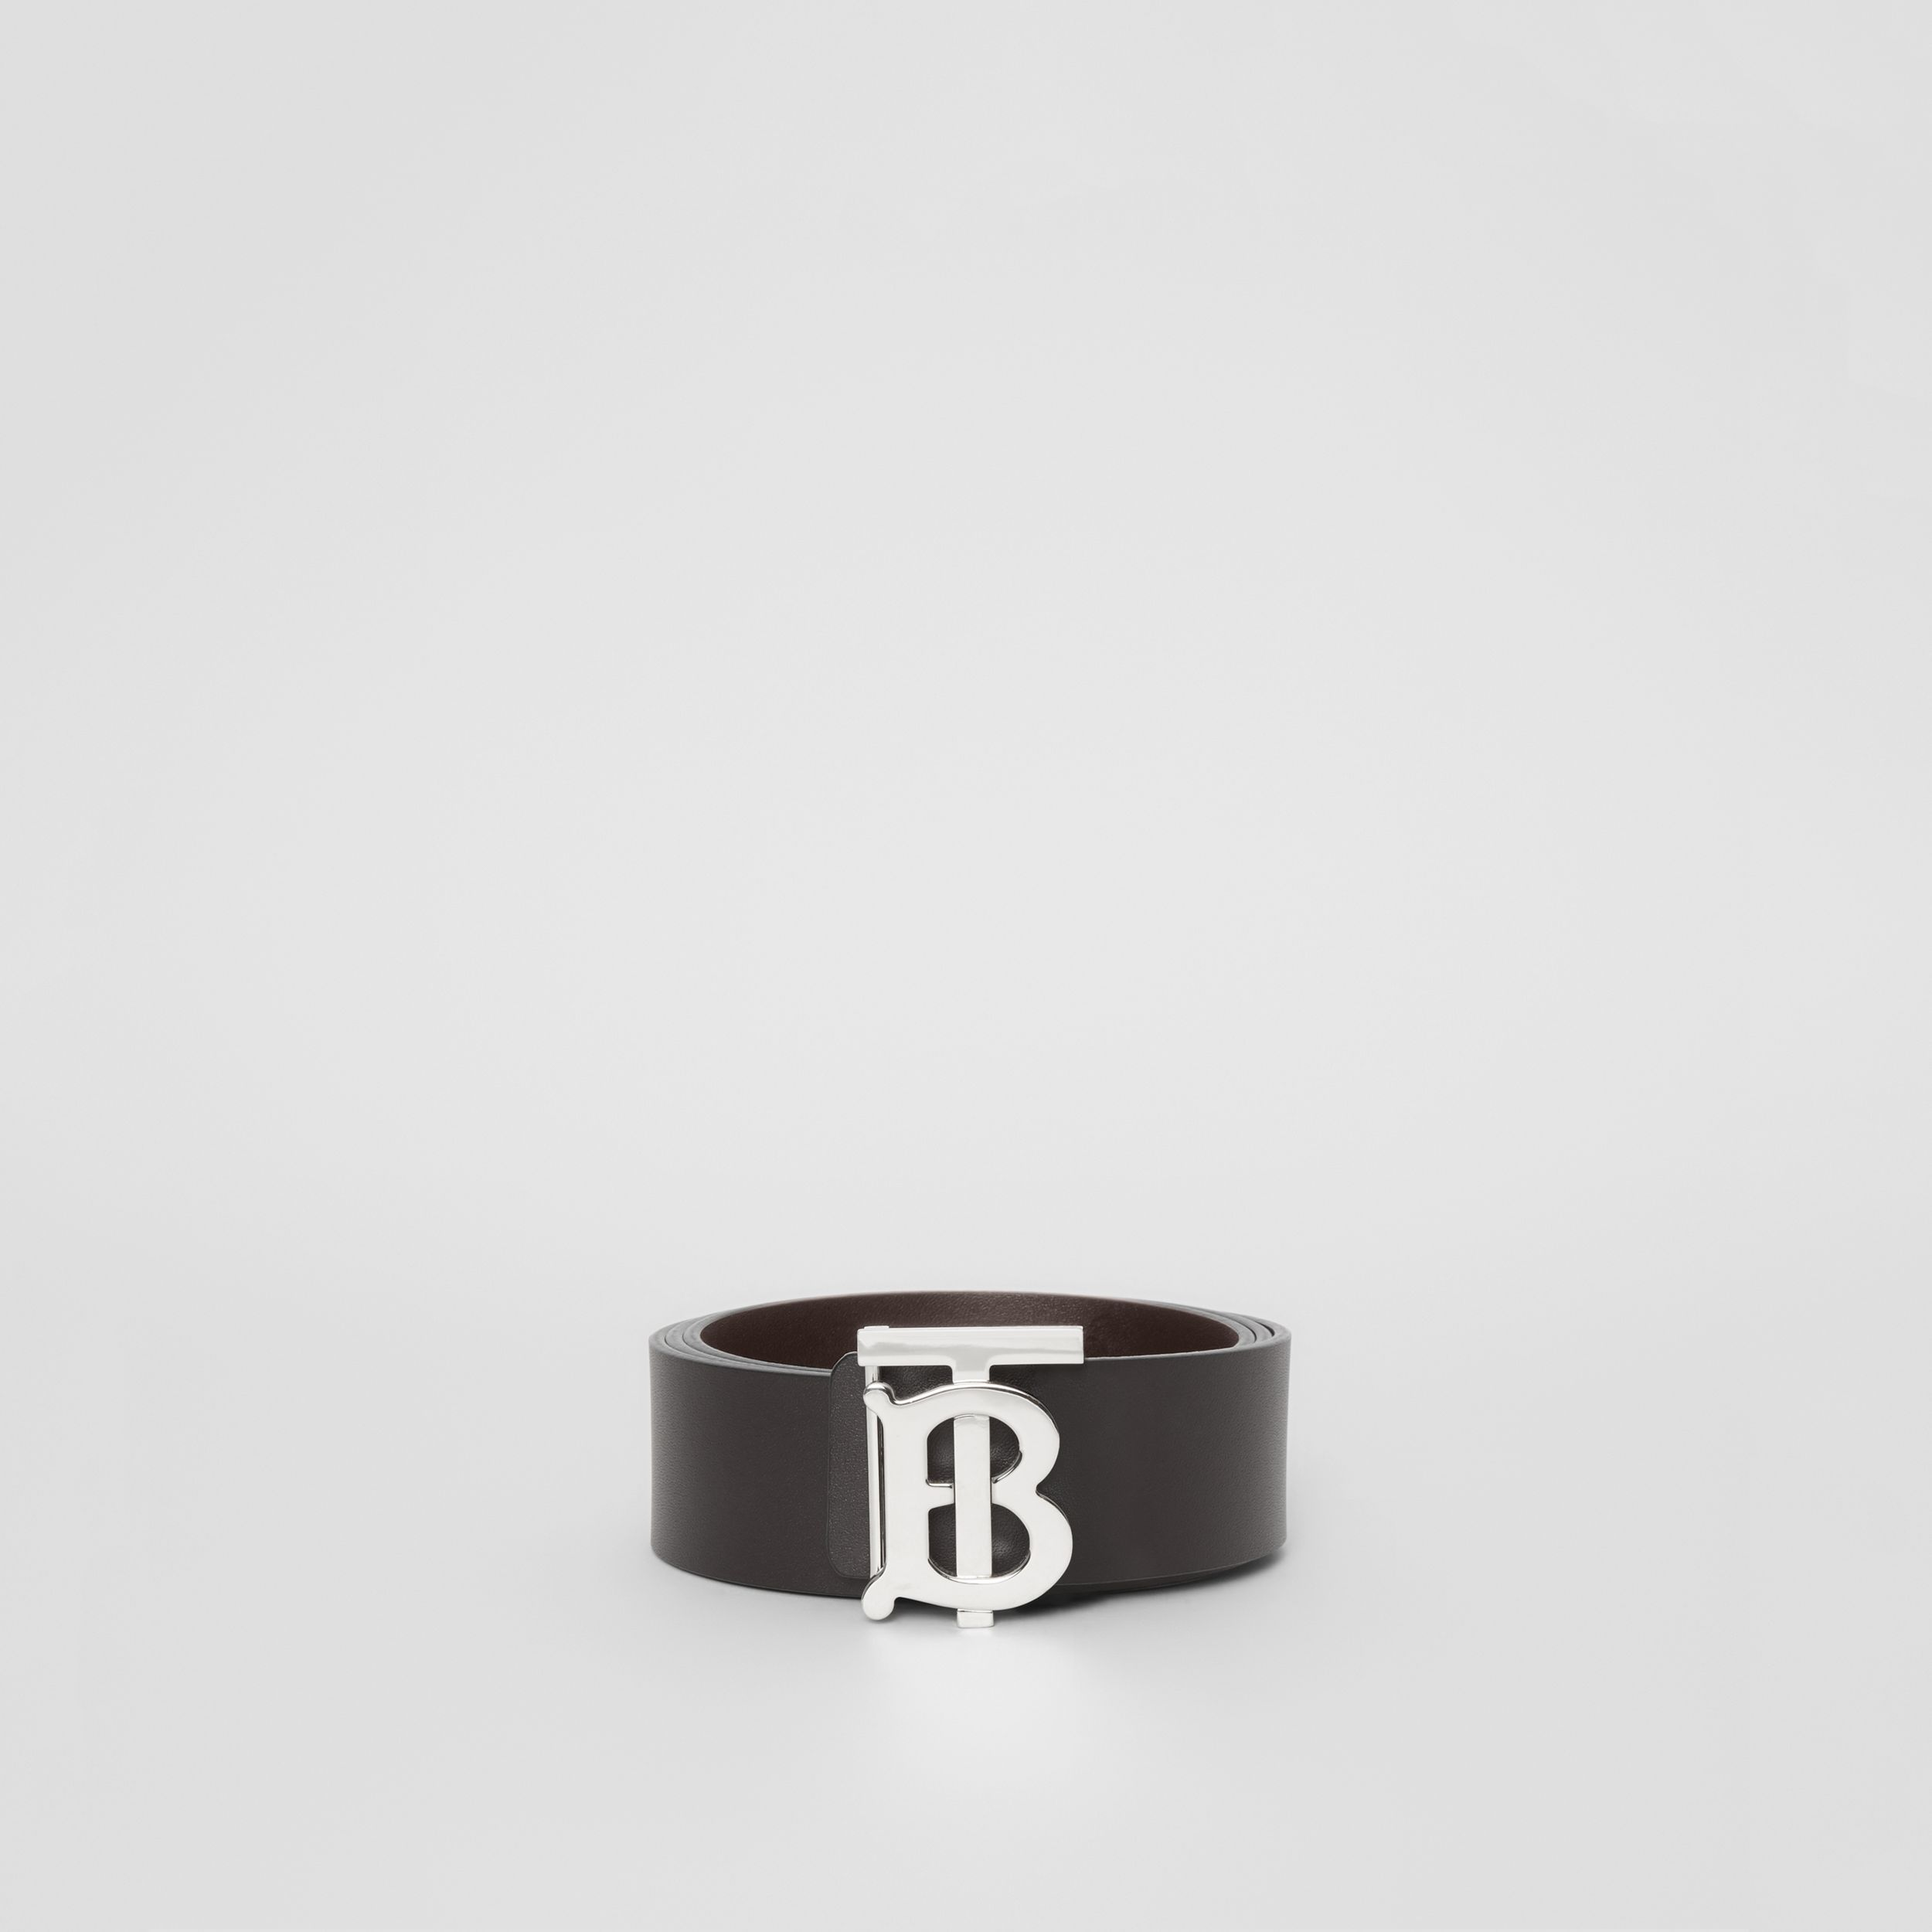 Reversible Monogram Motif Leather Belt in Black/malt Brown | Burberry - 4